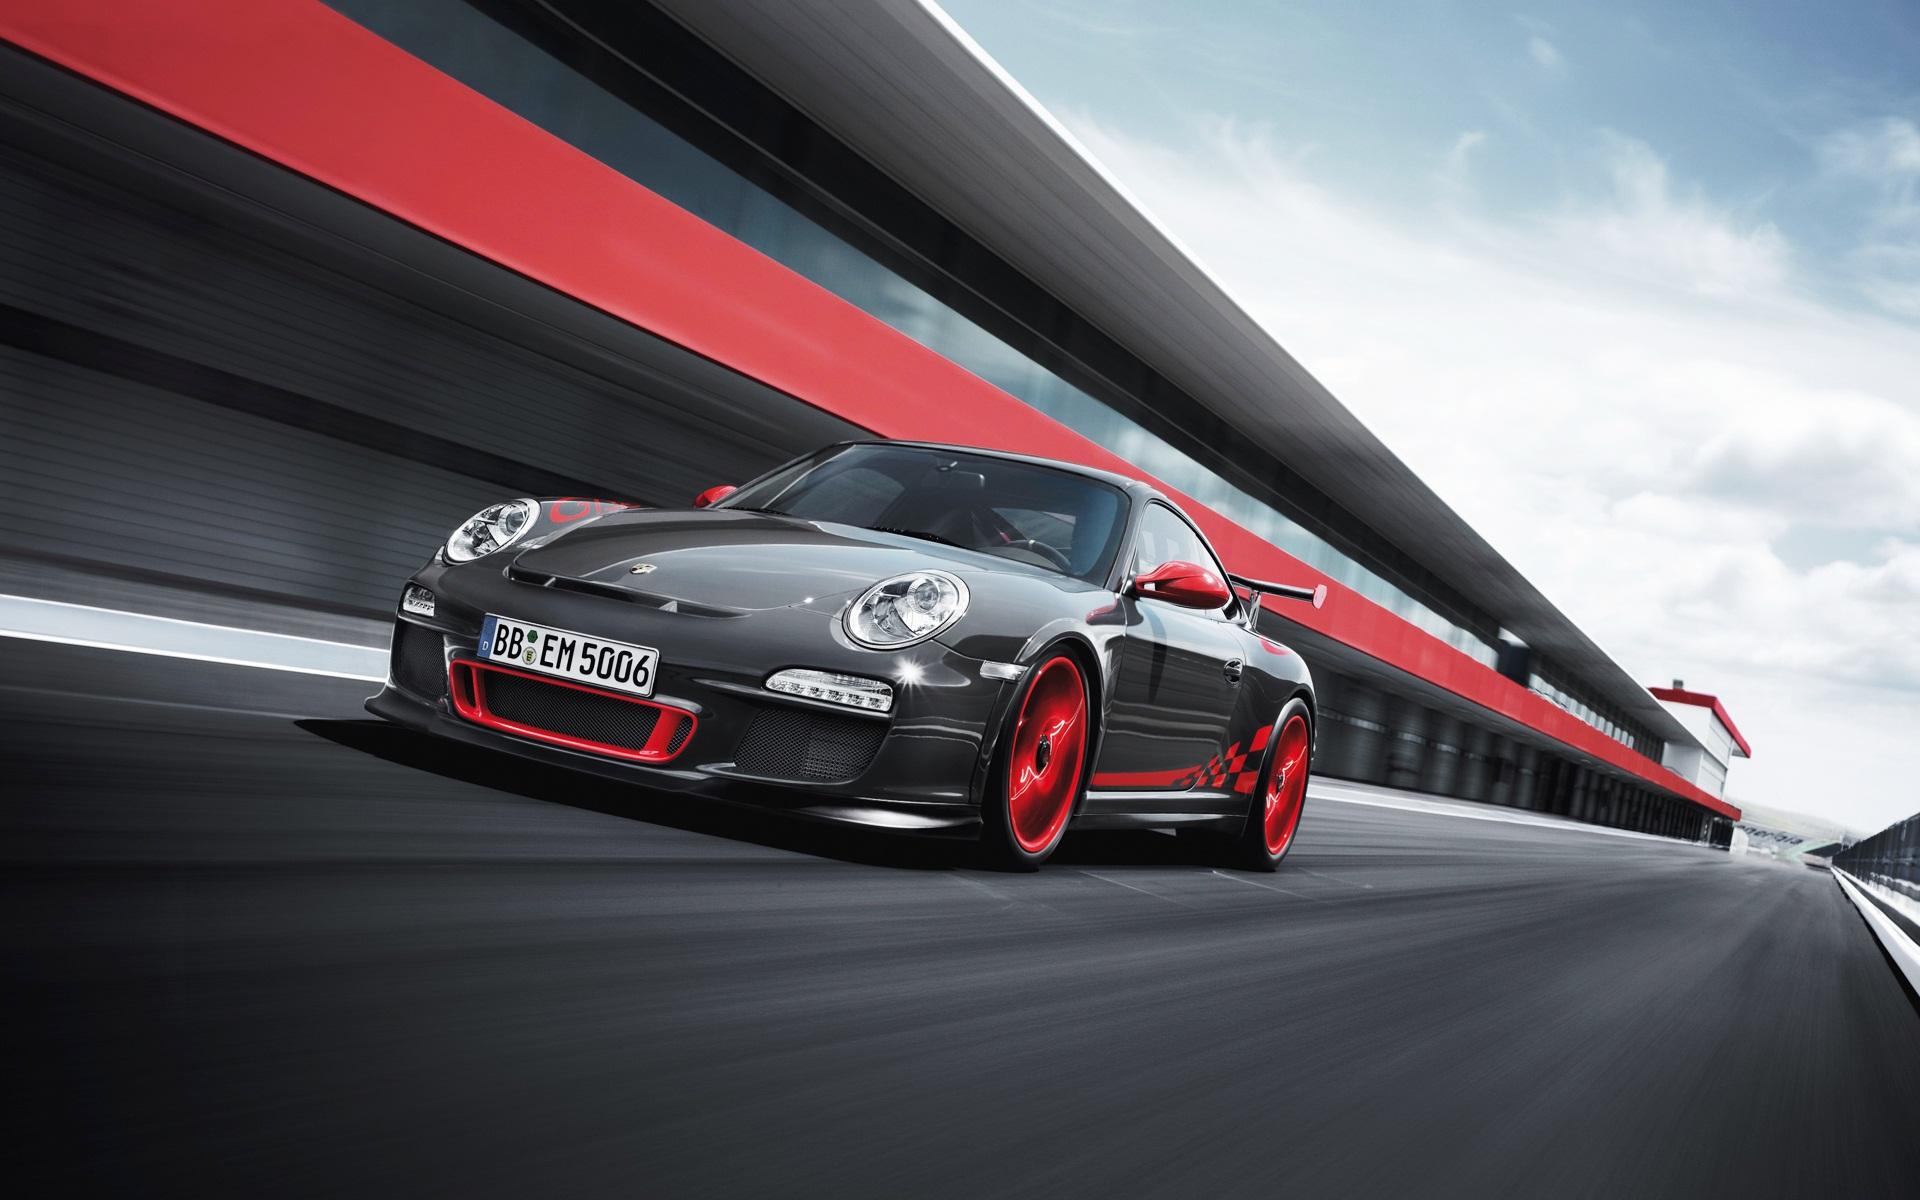 Porsche GT3 Background wallpaper 1920x1200 17730 1920x1200